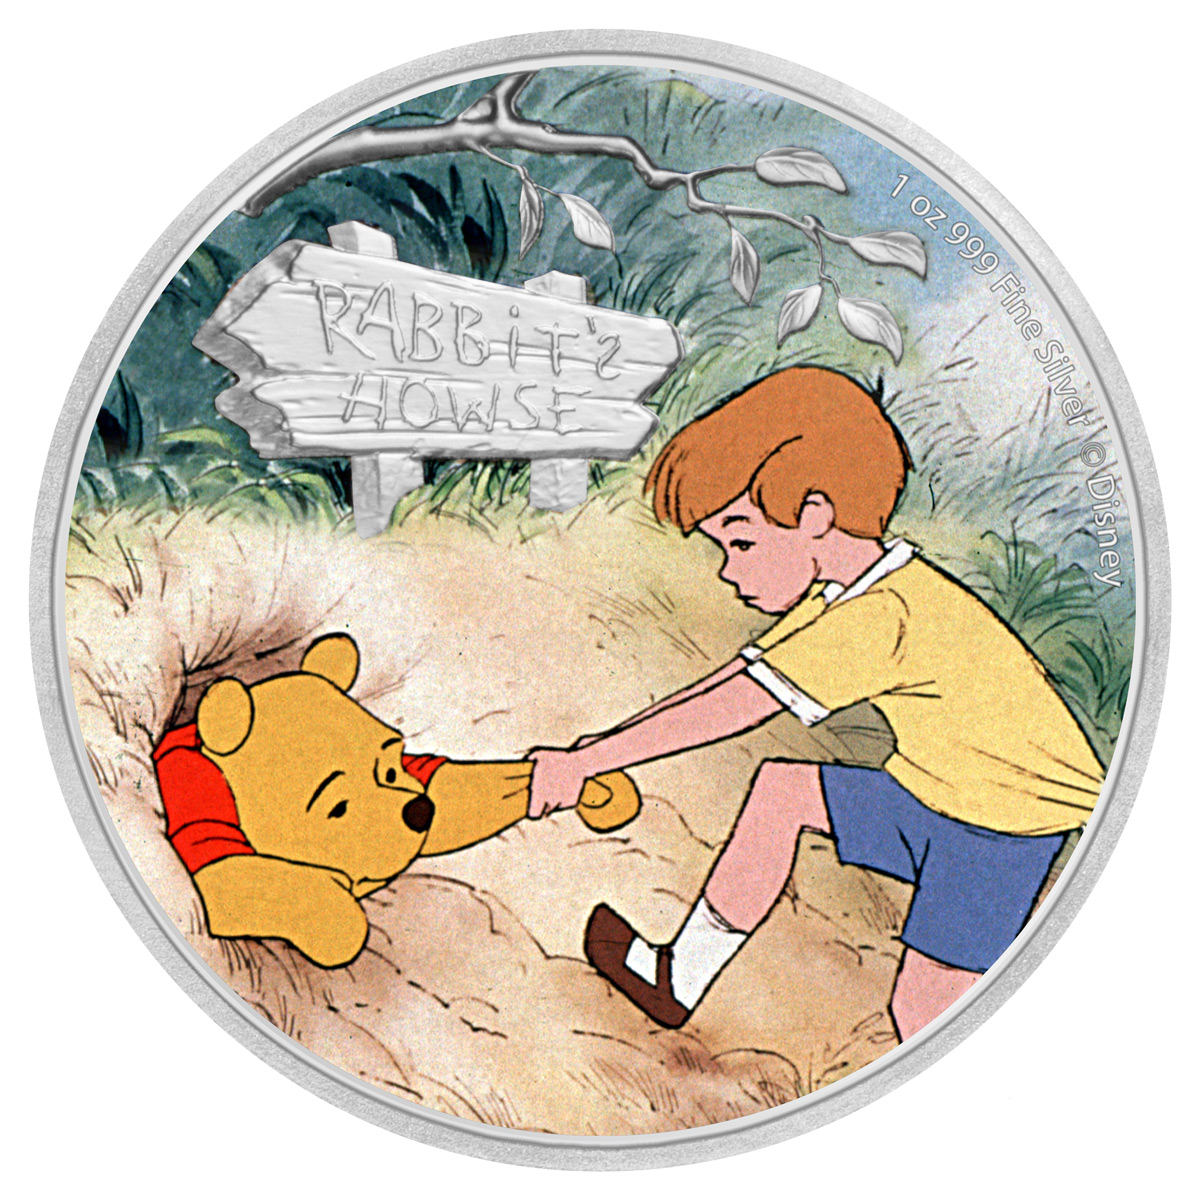 2021 Niue Disney Characters - Winnie the Pooh & Christopher Robin 1 oz Silver Colorized $2 Proof Coin GEM Proof OGP